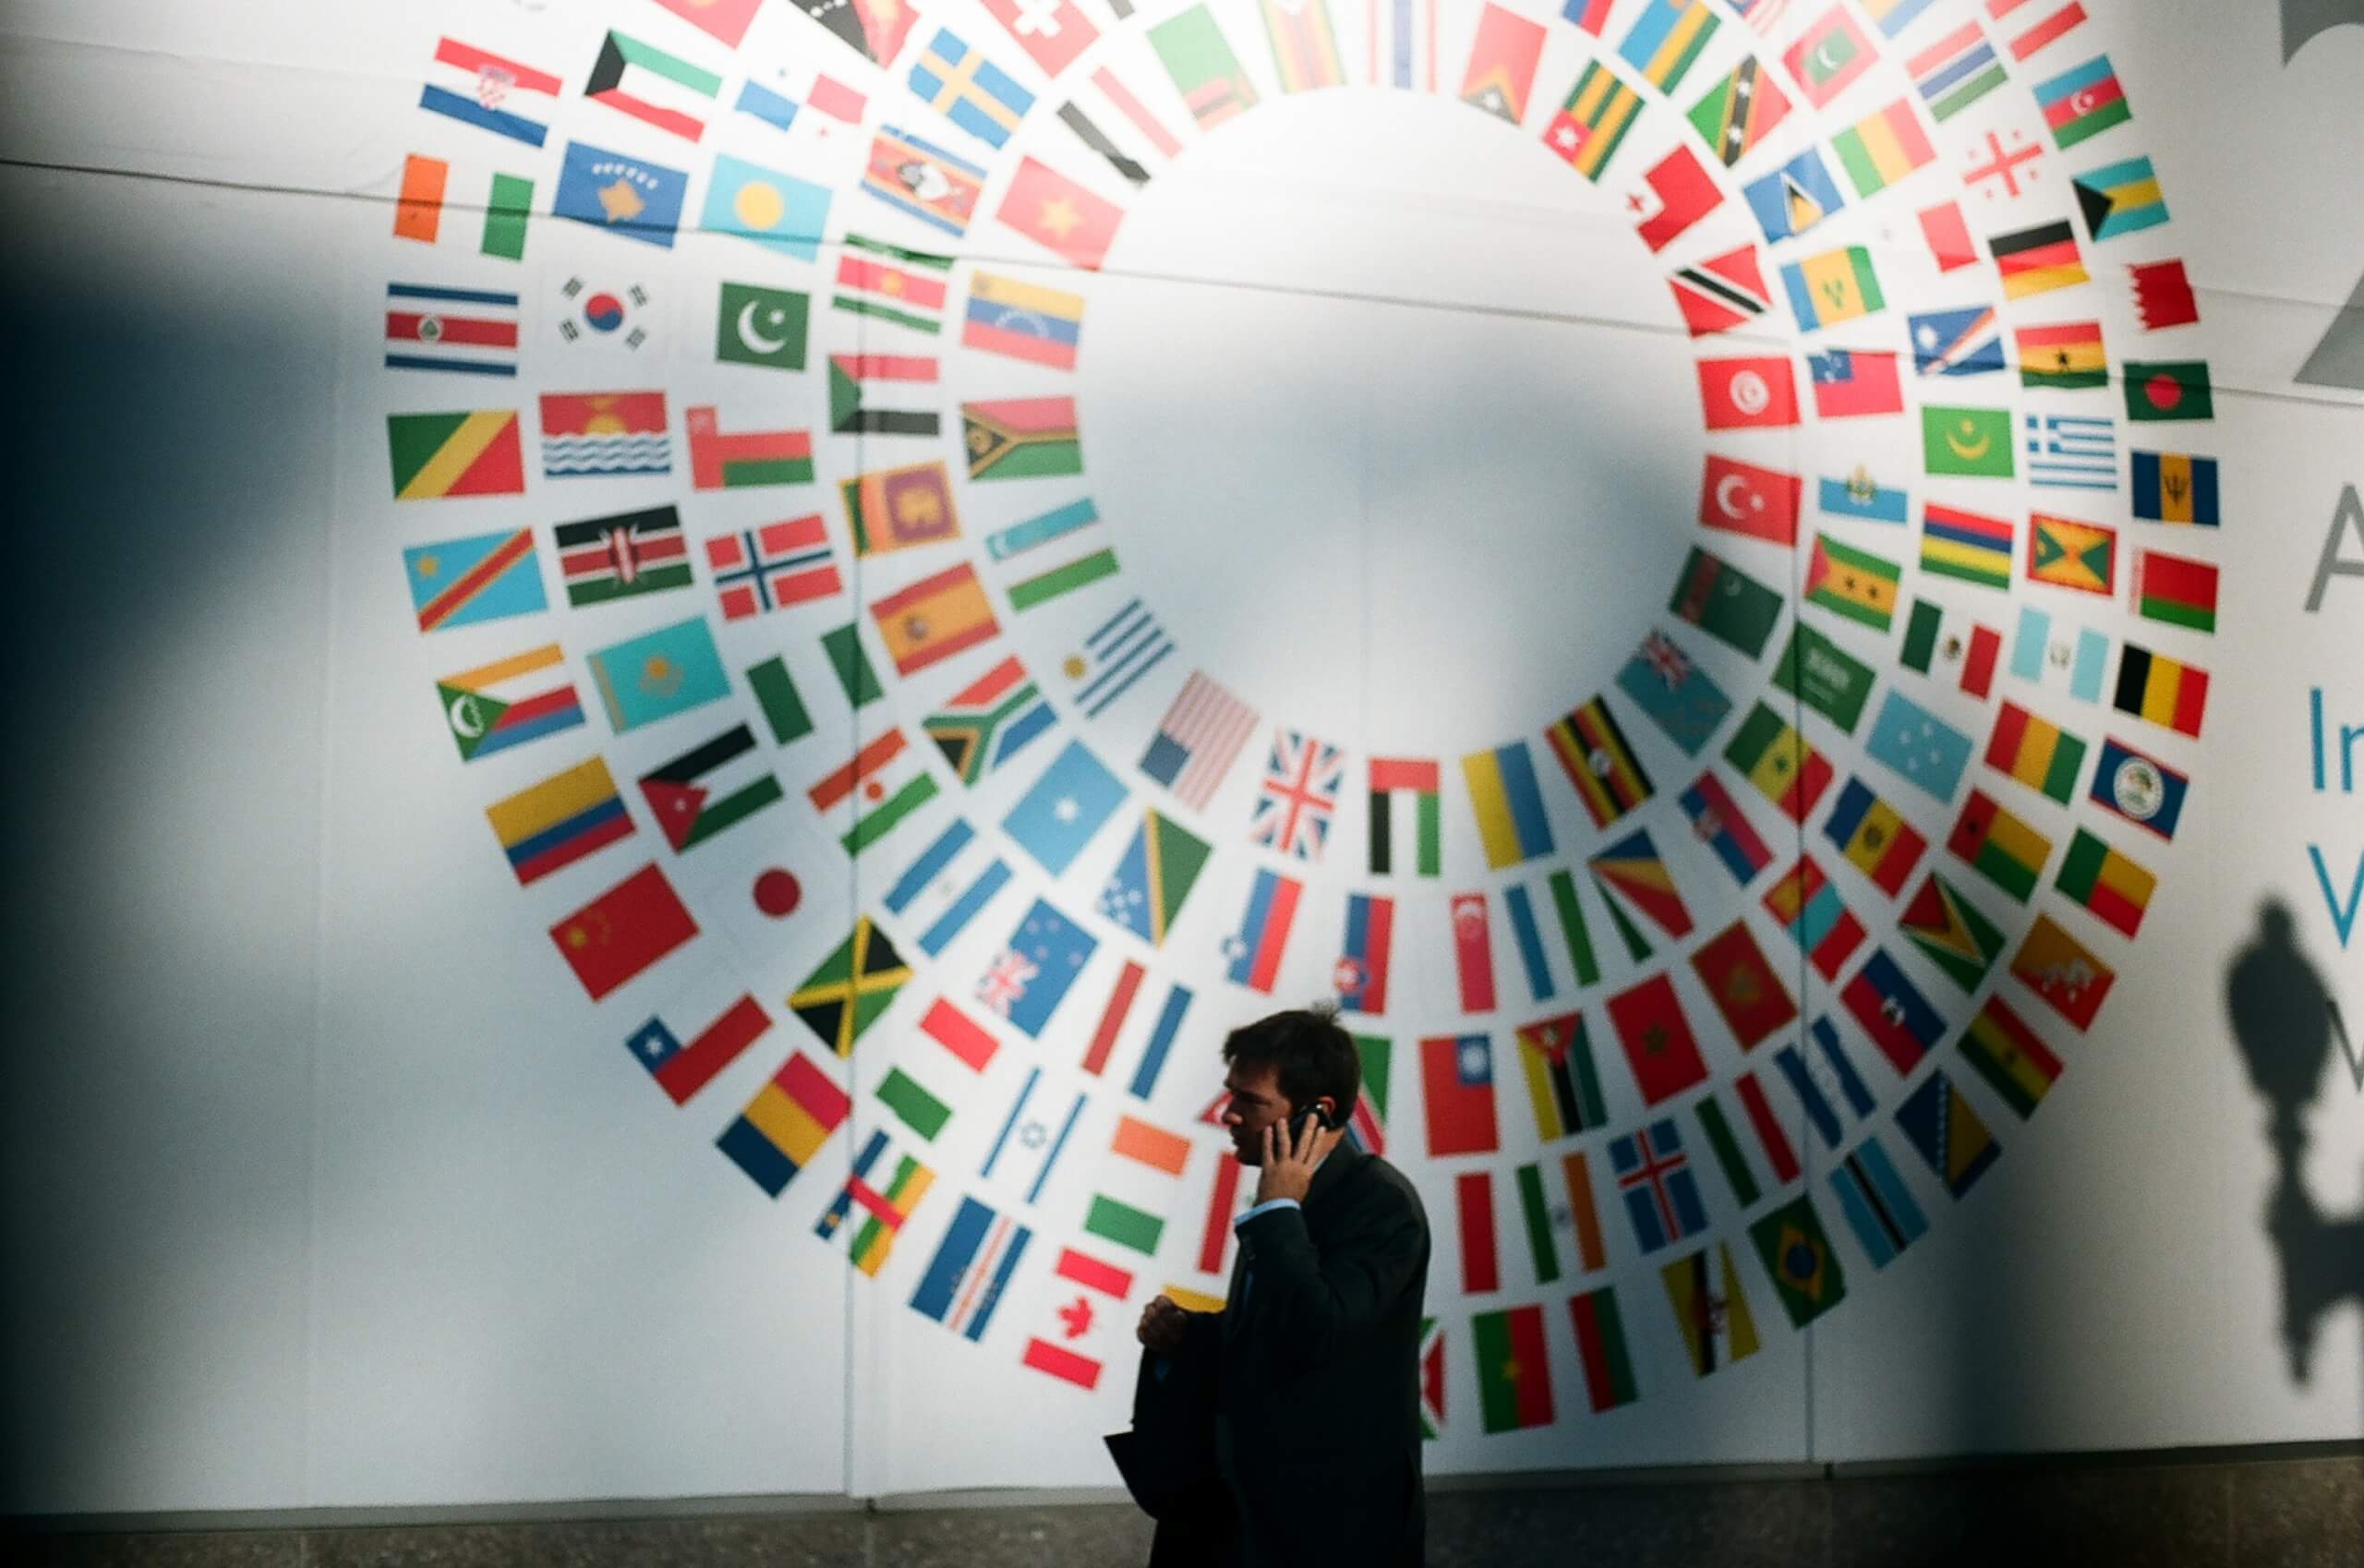 in the foreground a man is on his phone. In the background the world s flags appear in a circle on a wall outside the world bank